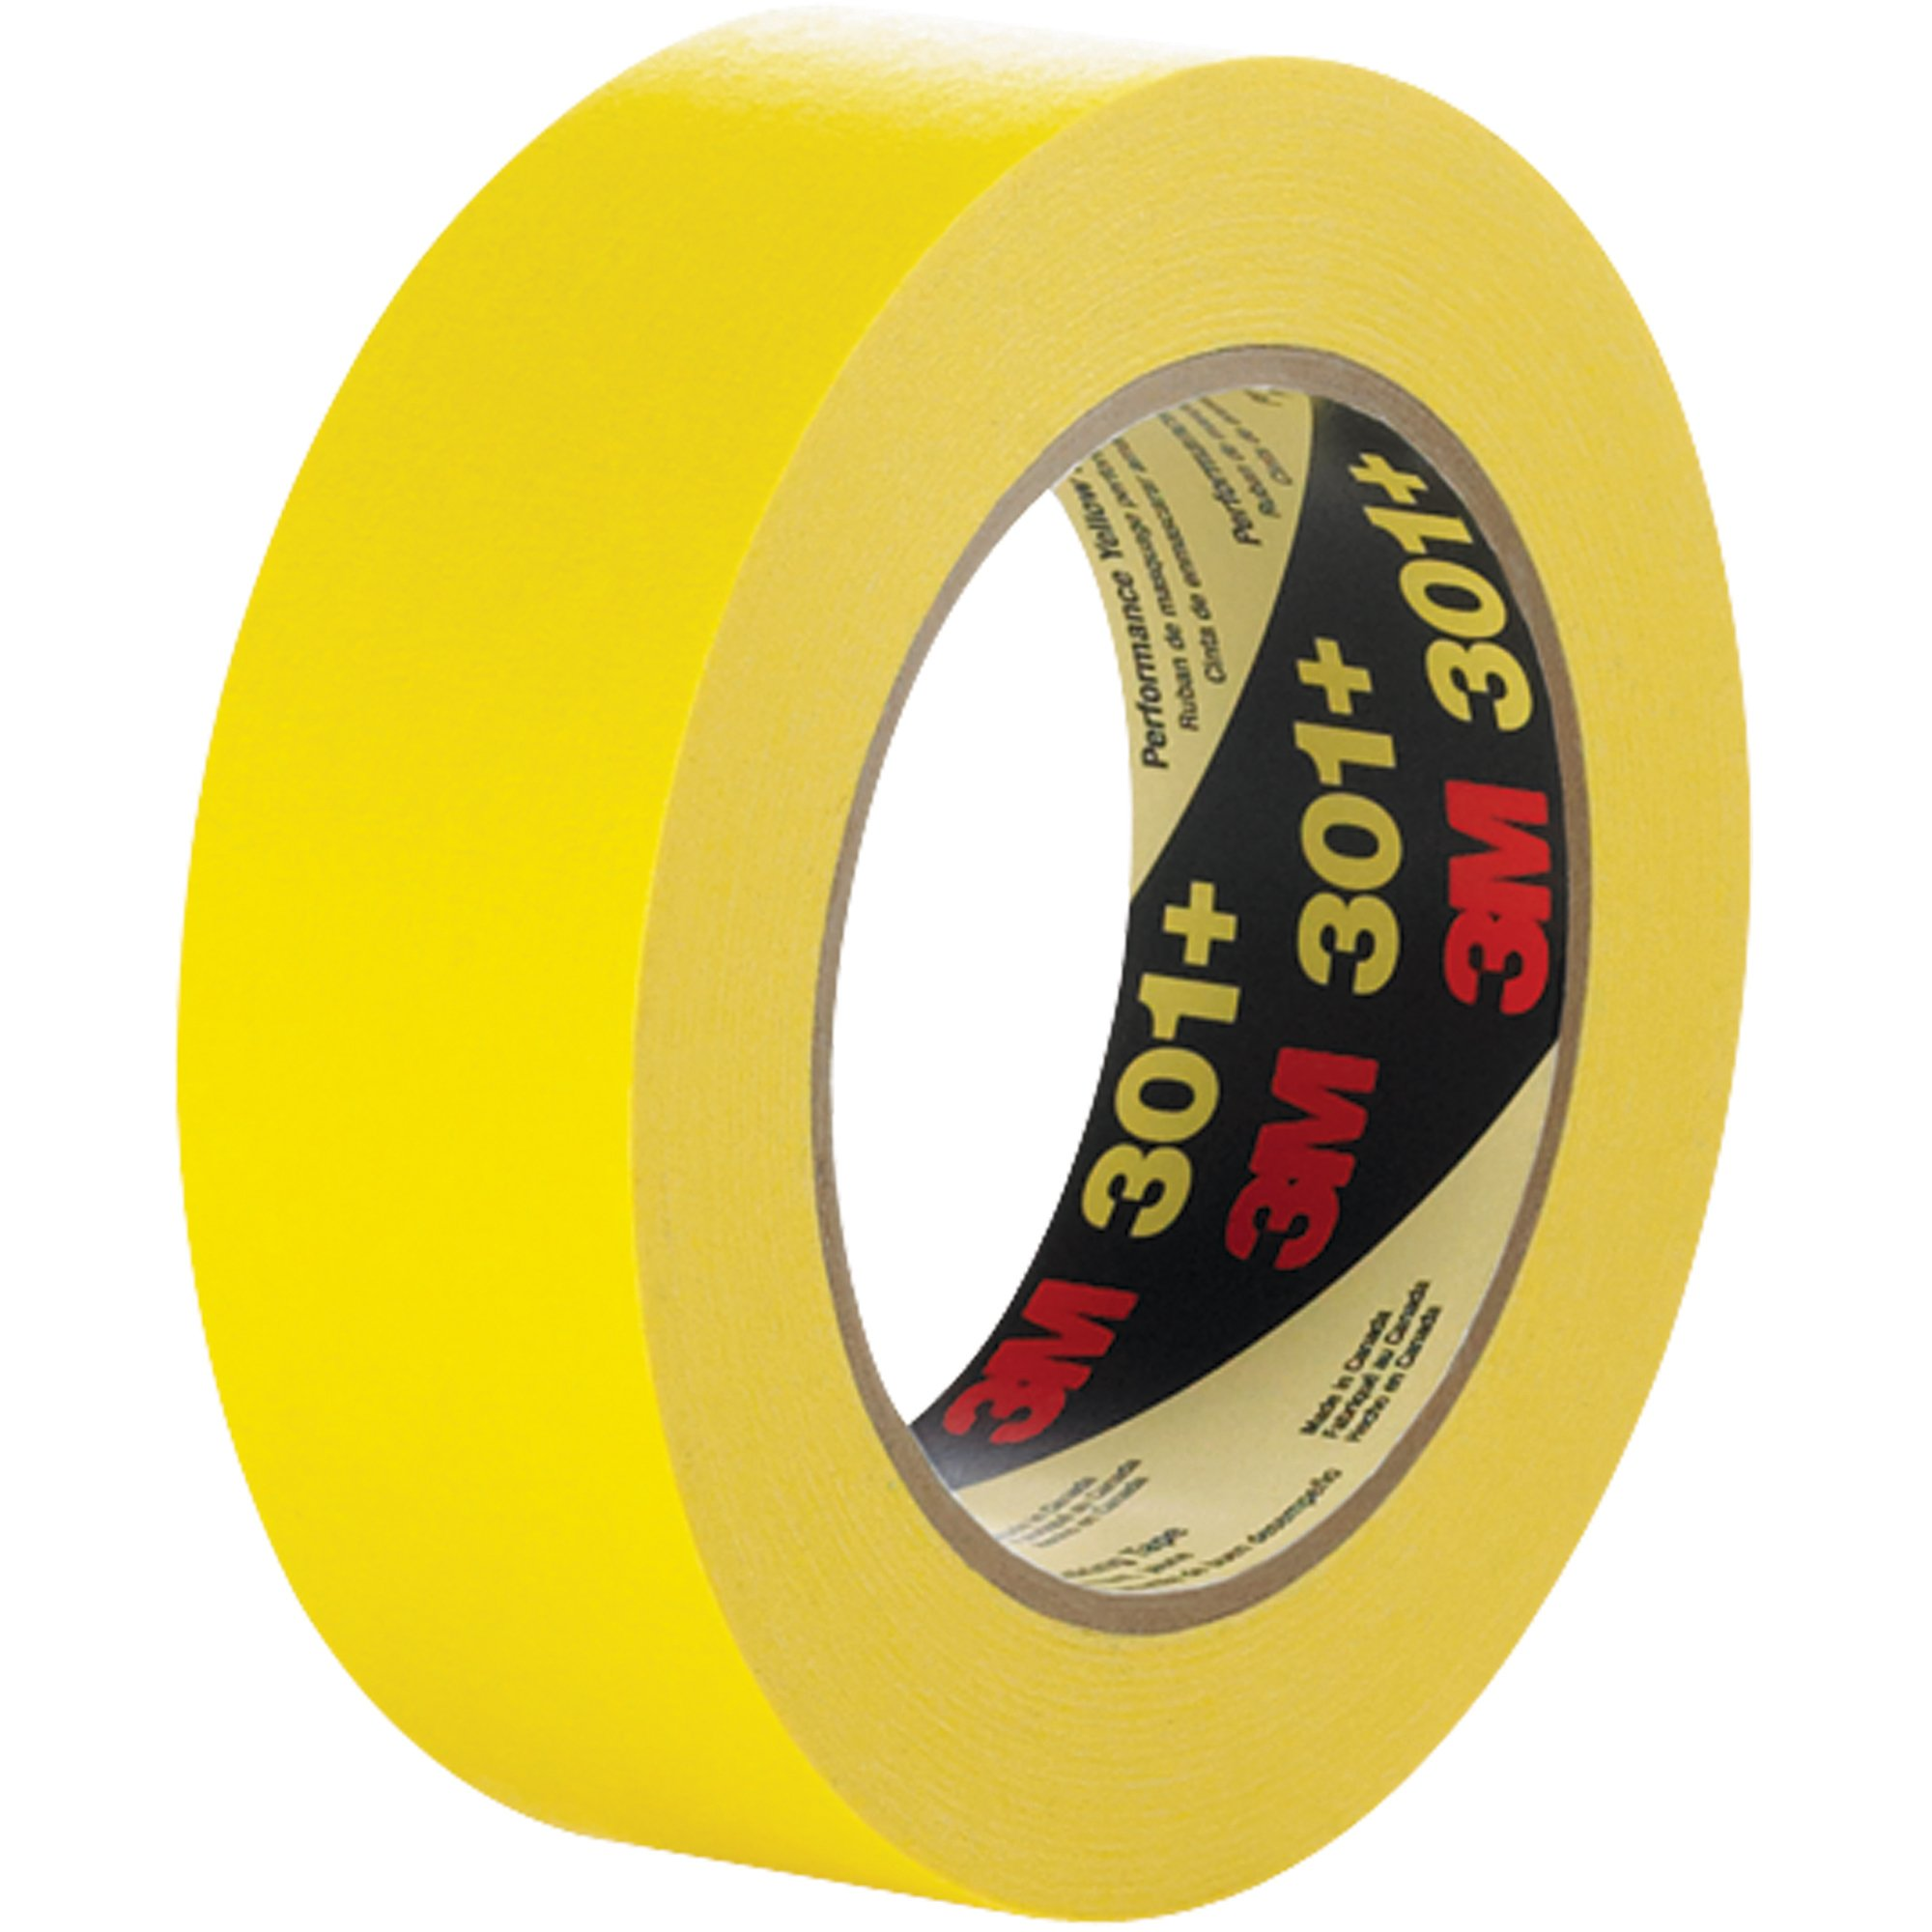 Top Pack Supply 3M301+ Masking Tape, 6.3 Mil, 3/4'' x 60 yds. Yellow (Case of 12)